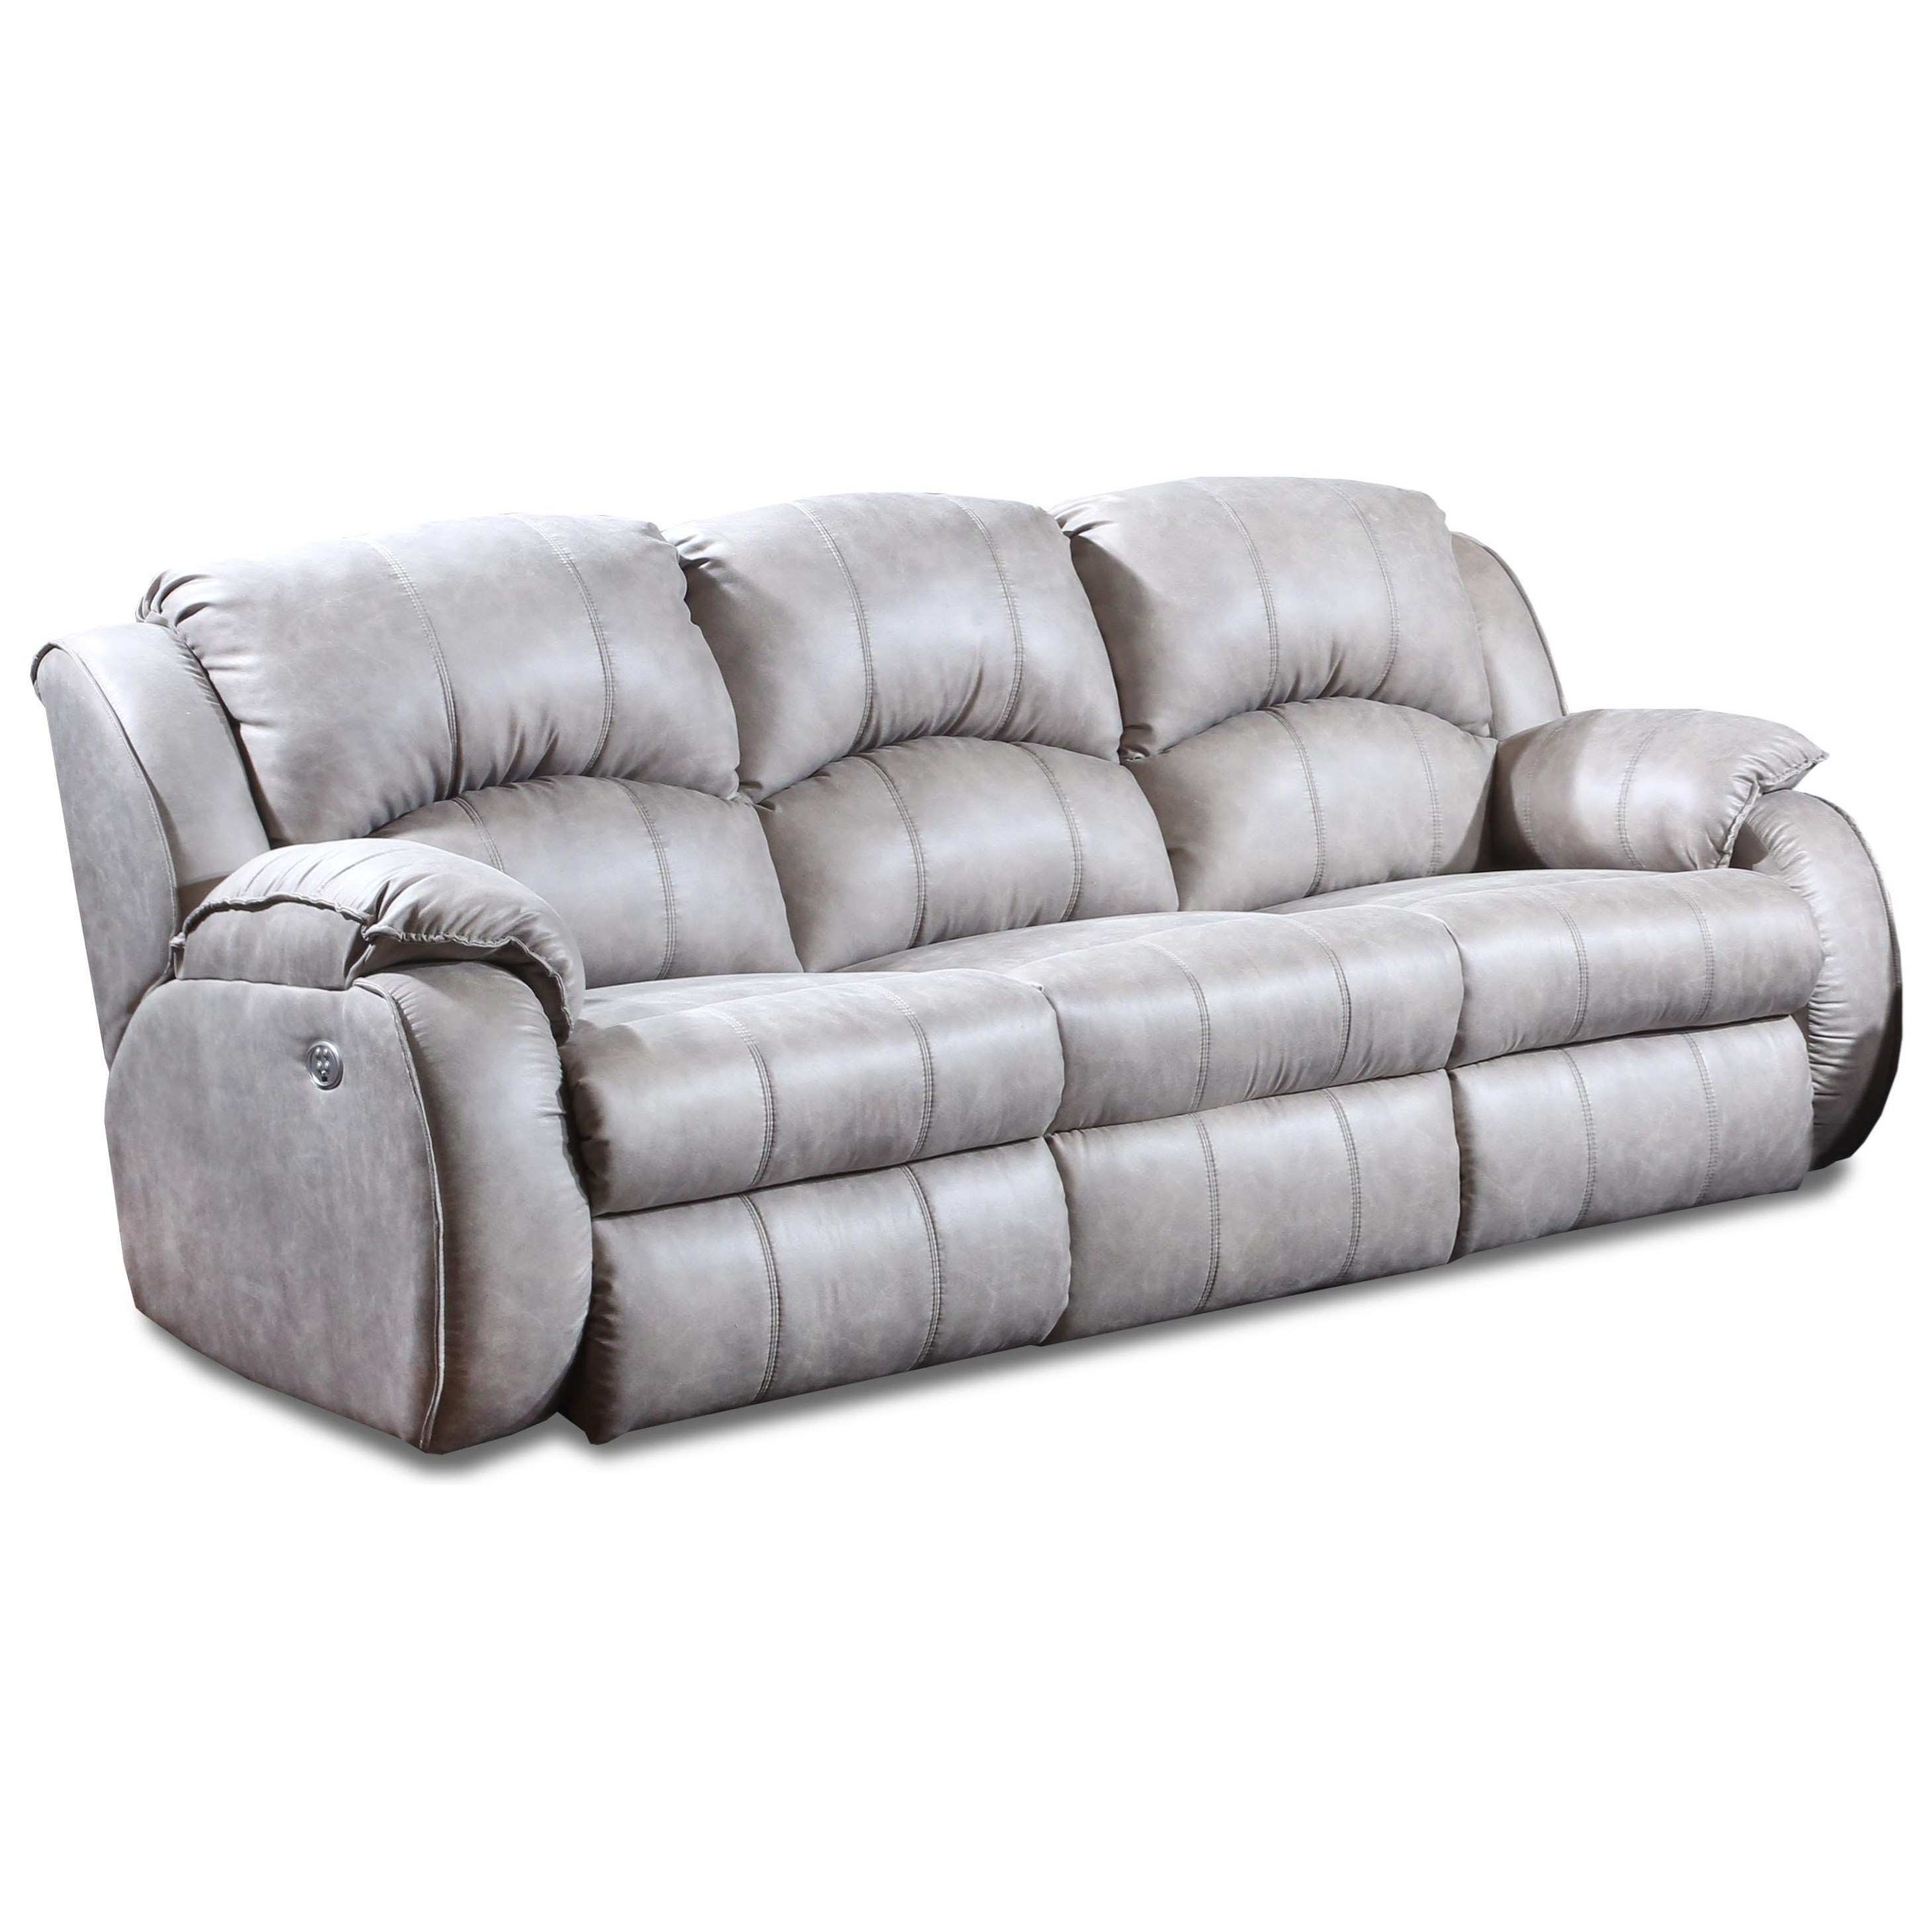 Cagney Power Headrest Reclining Sofa by Southern Motion at Furniture Barn